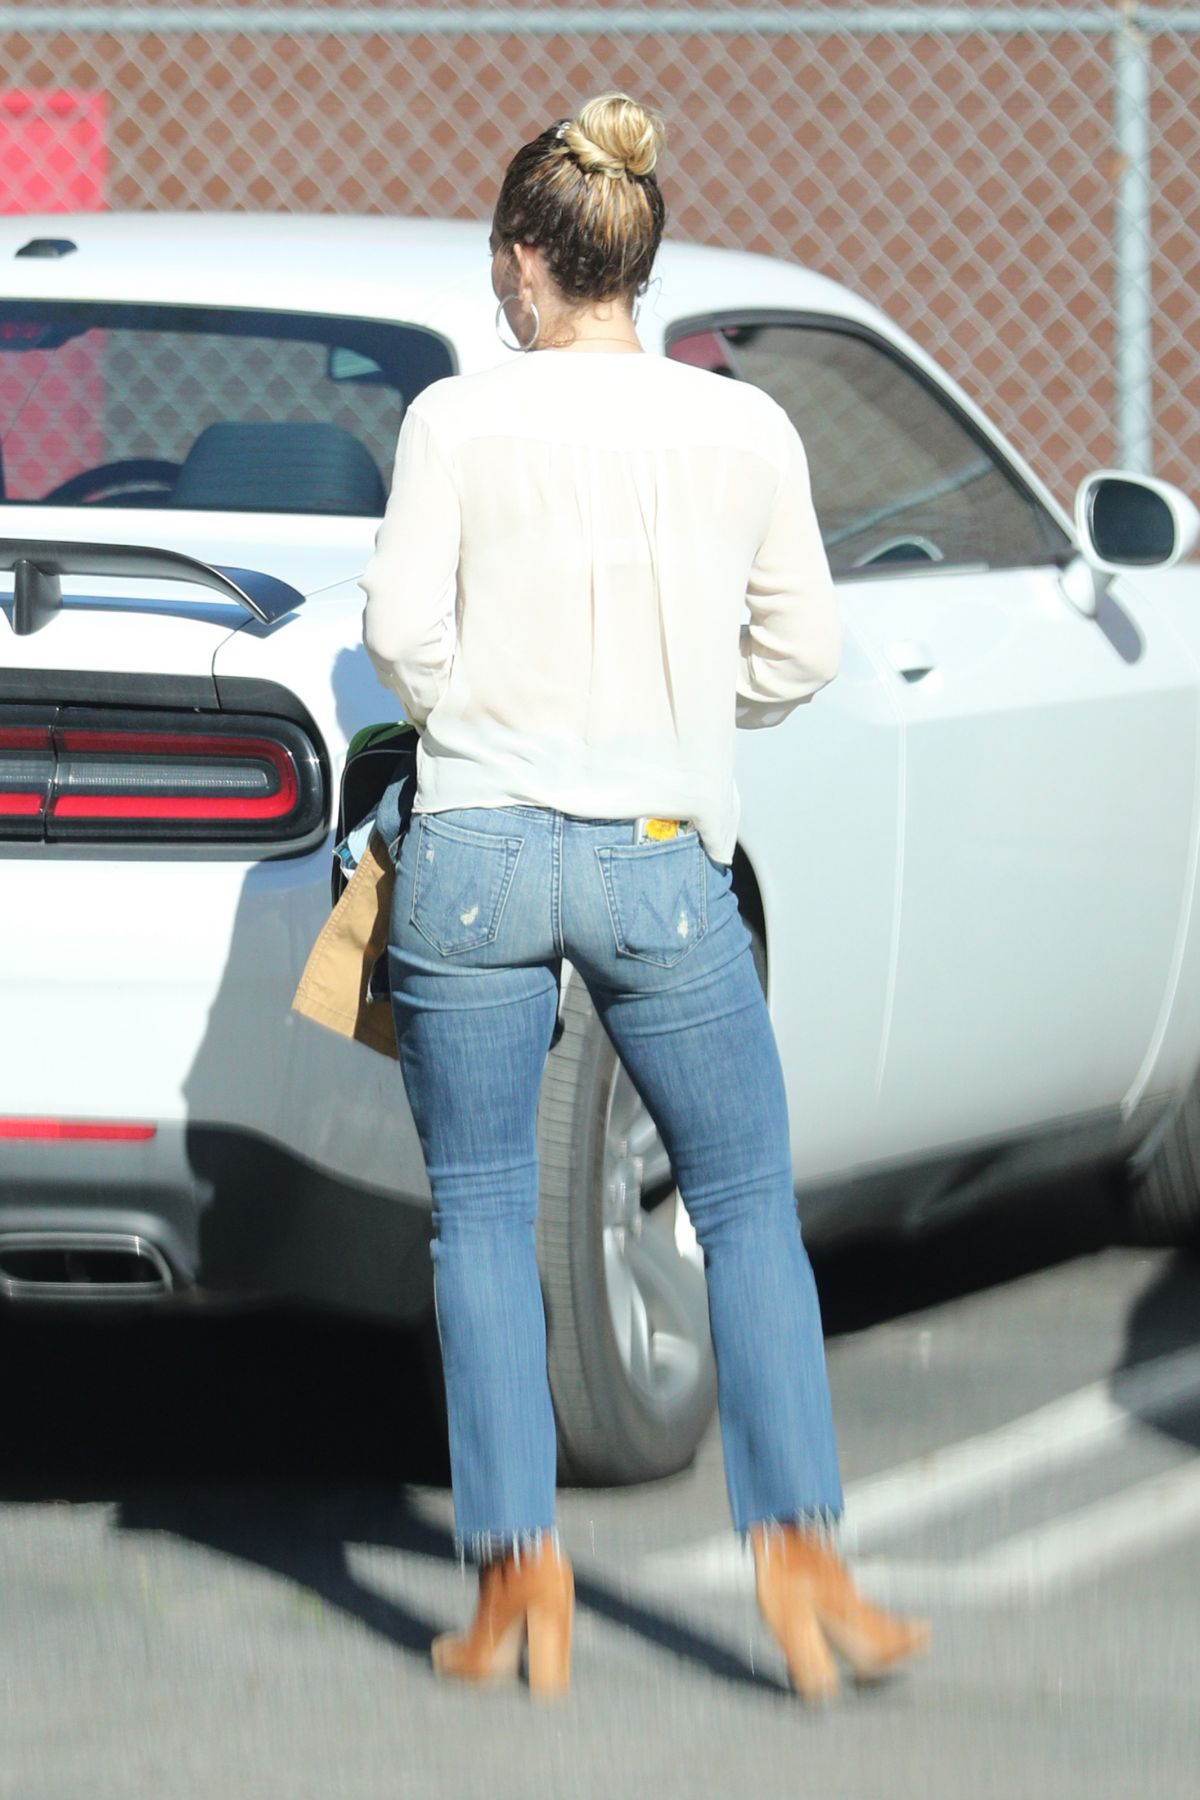 Hilary duff at nine zero one salon in west hollywood 02 22 for 2 the nines salon